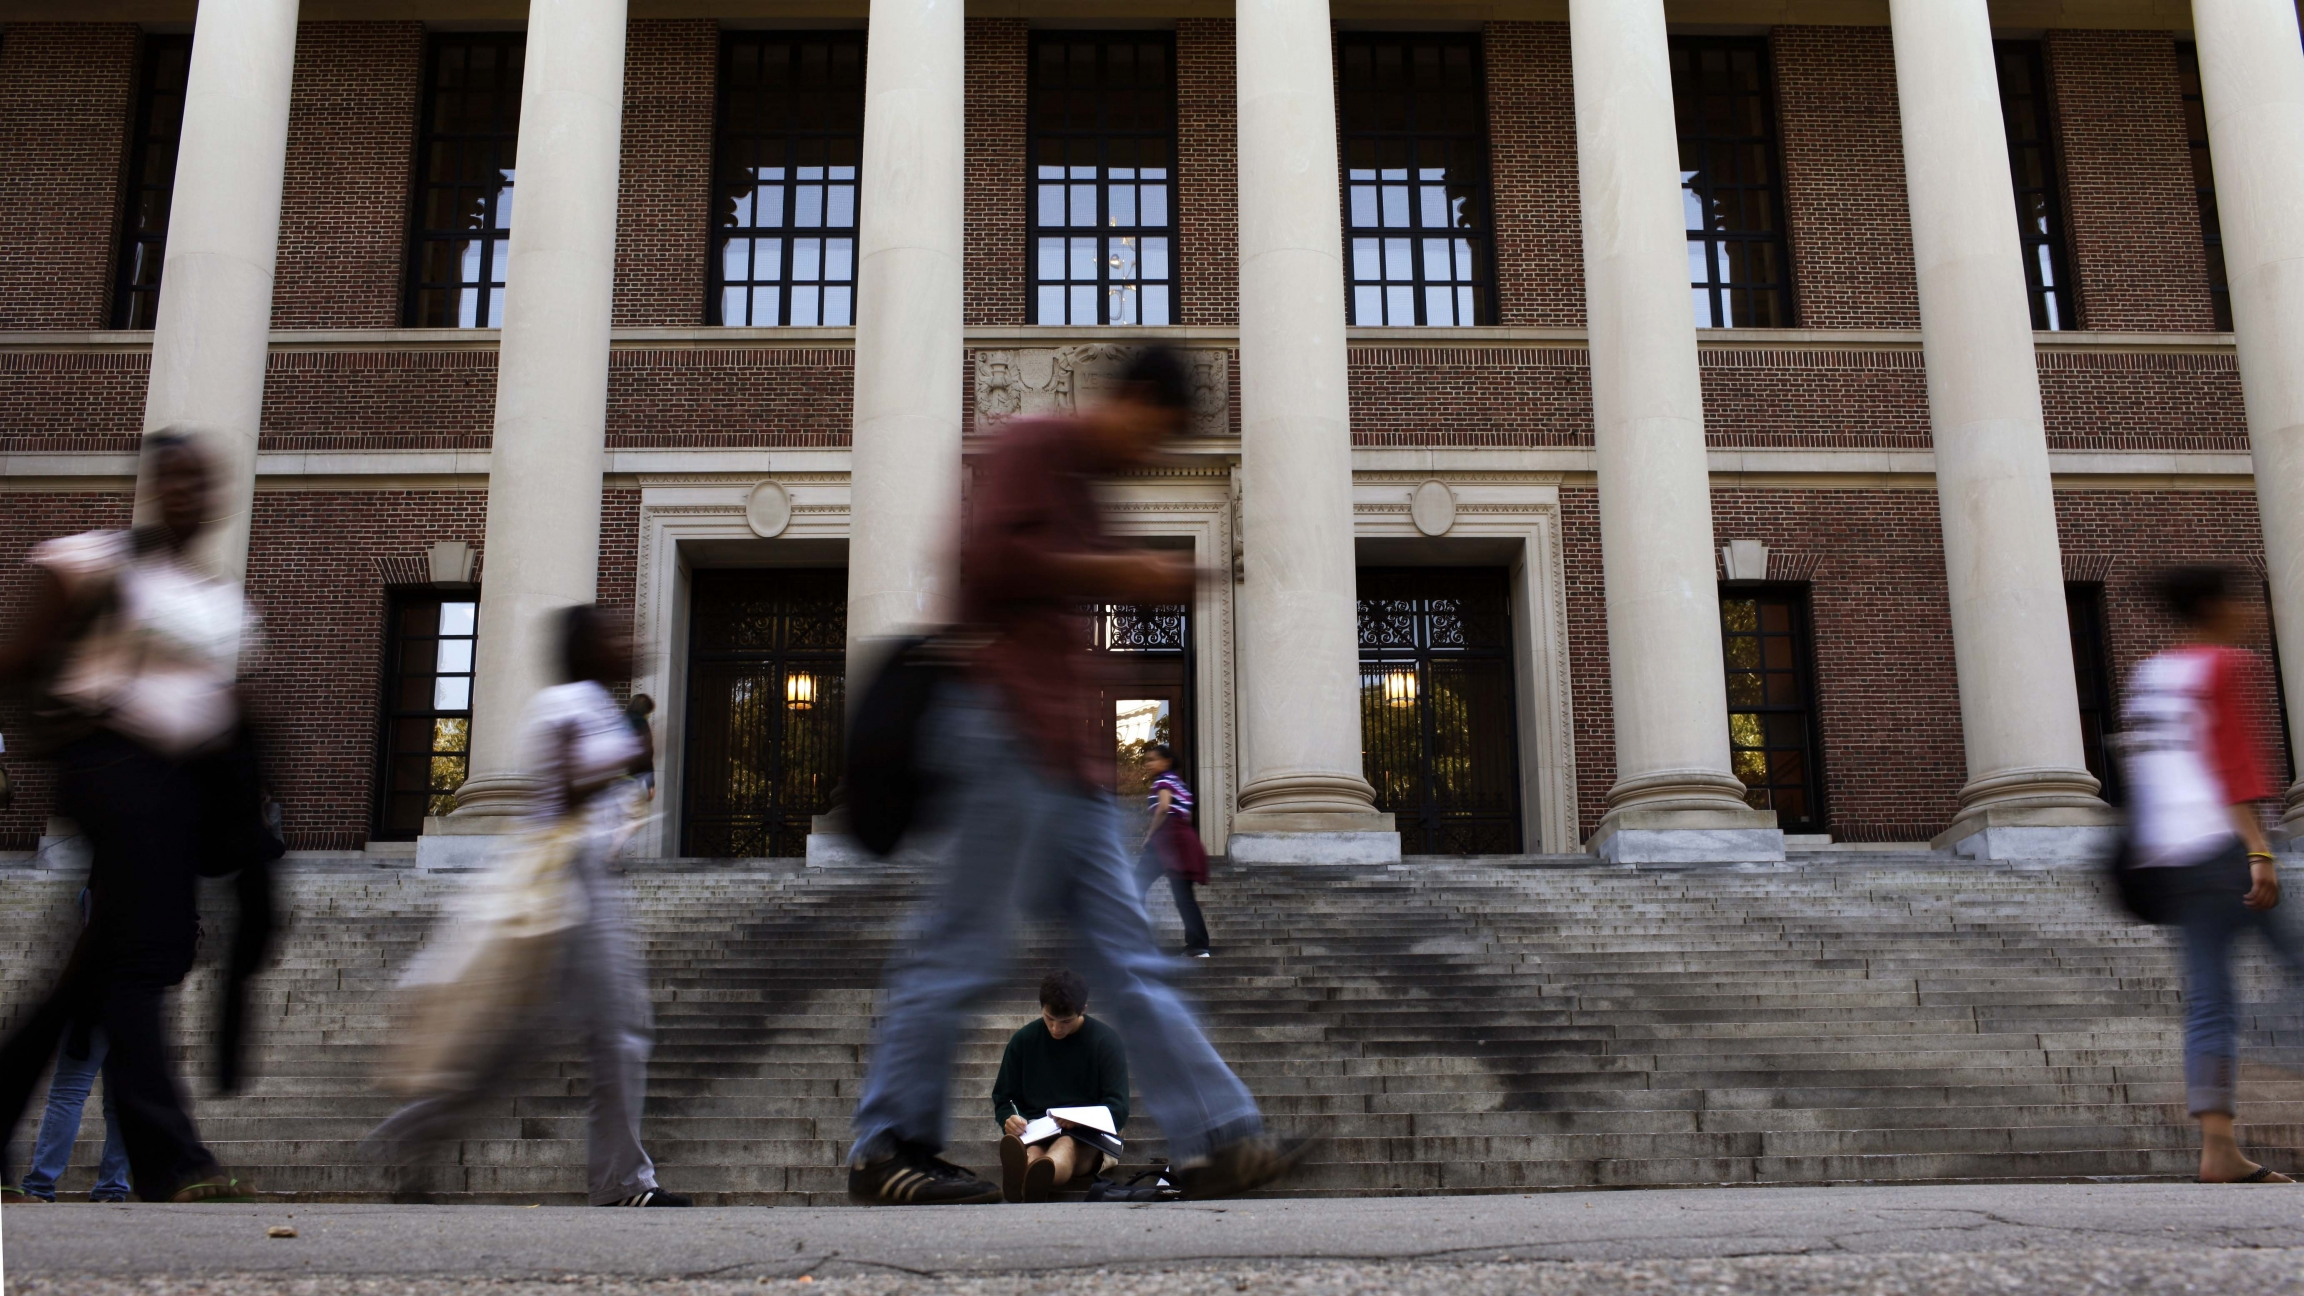 A students sits on the steps of Widener Library at Harvard University in Cambridge, Massachusetts, on Sept. 21, 2009.